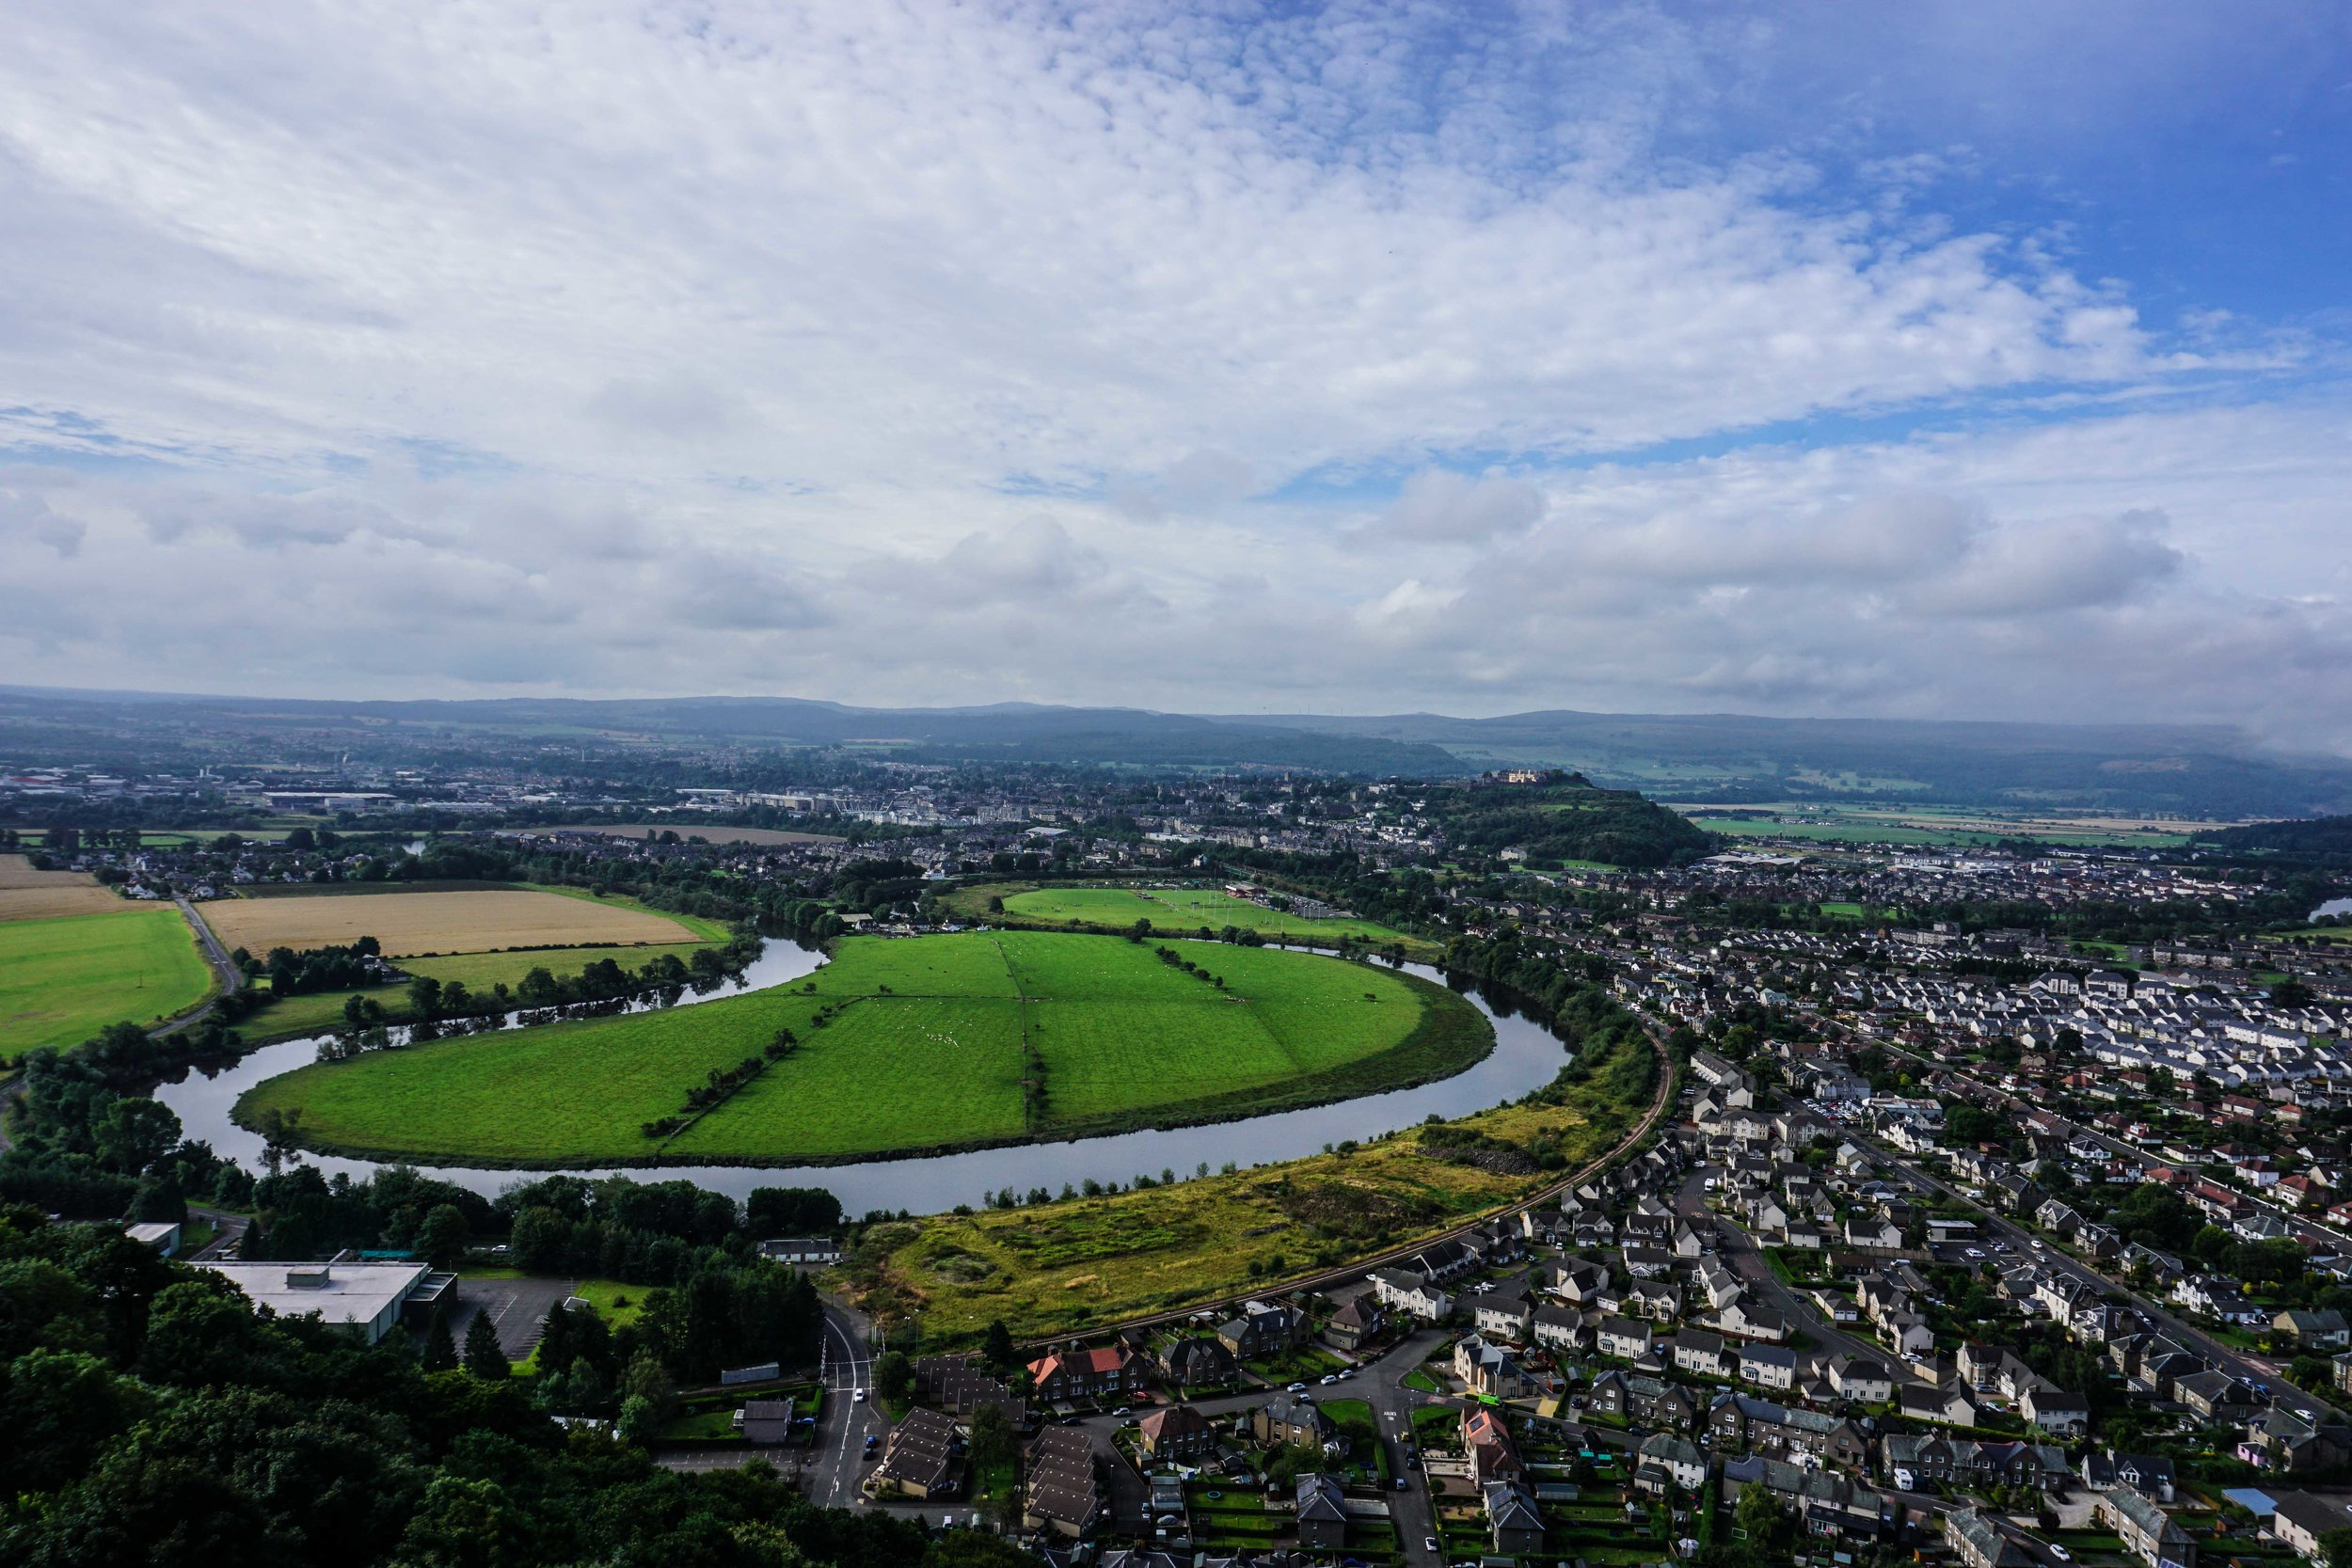 That inlet of grass is where William Wallace and his men trapped the English in the Battle of Stirling